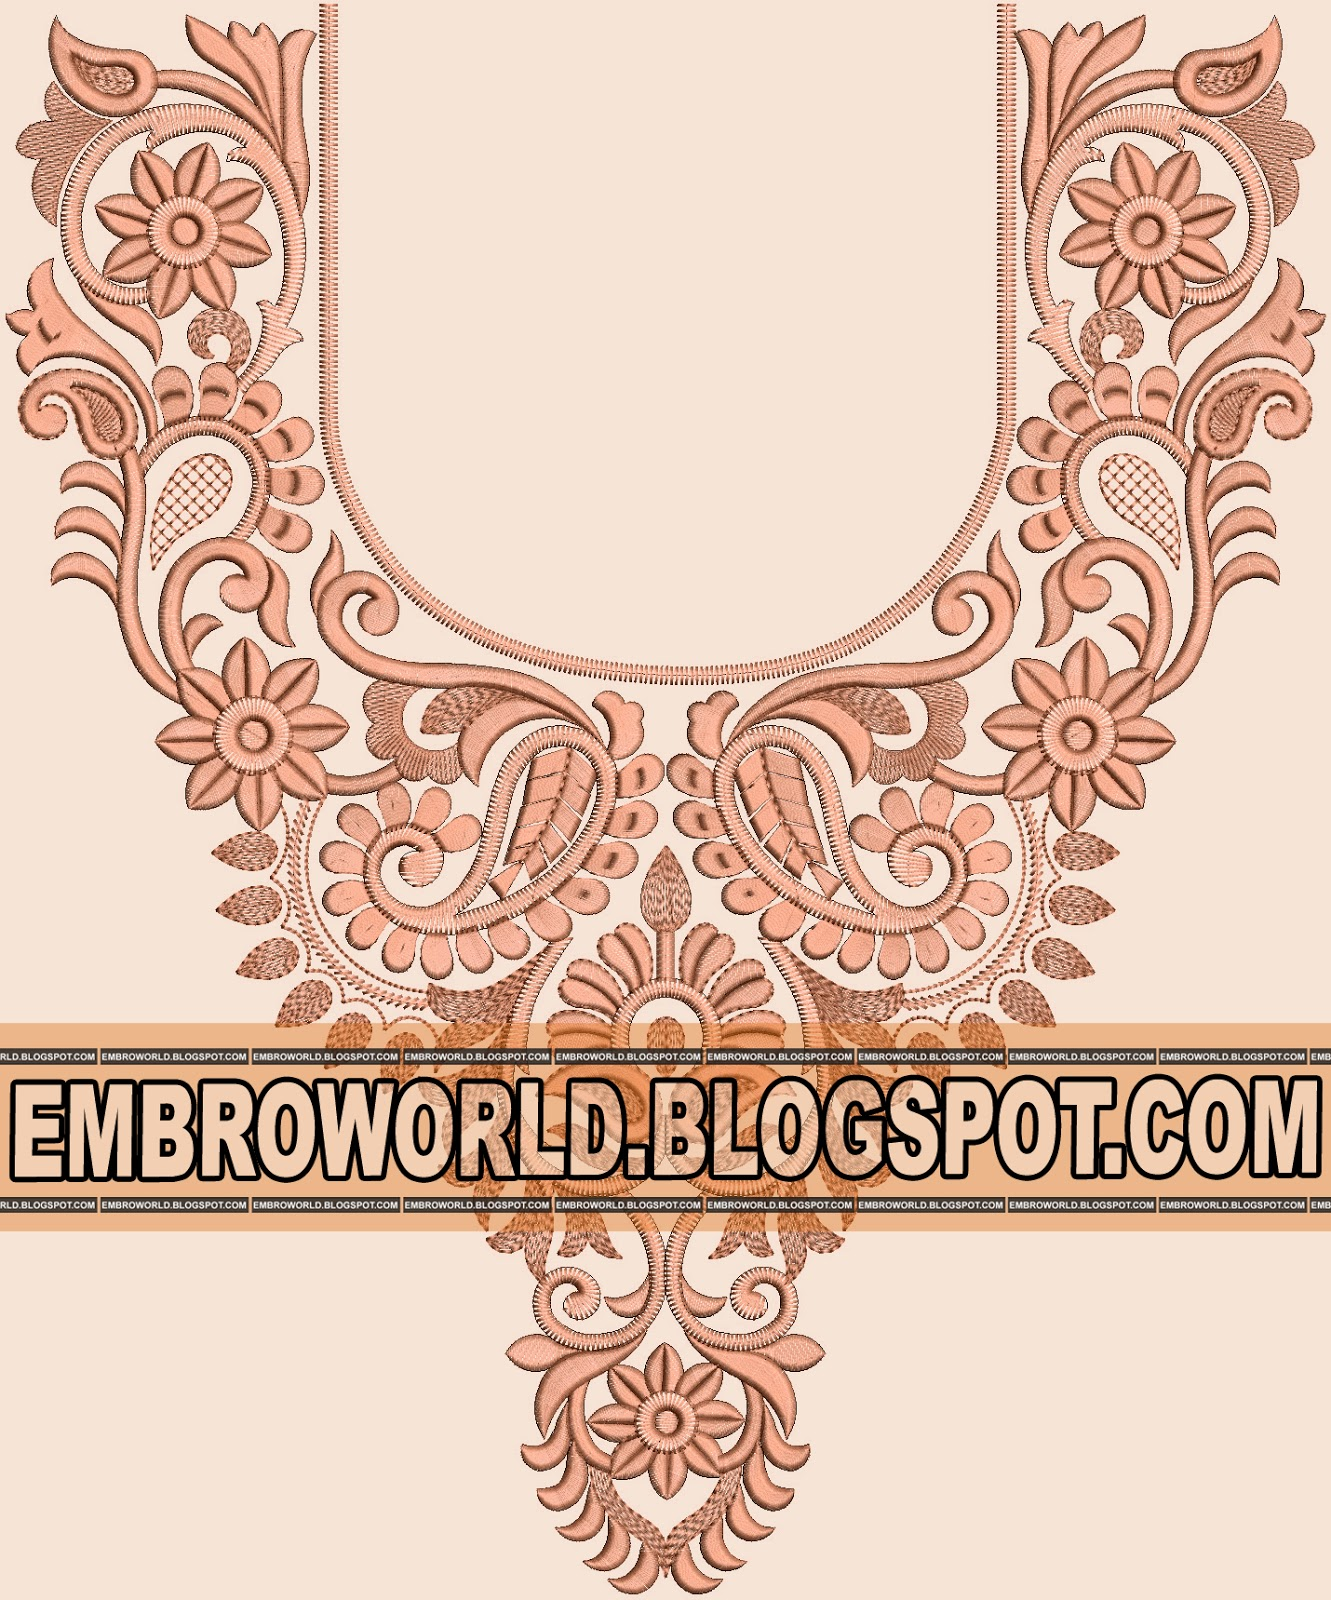 Embroidery Design On Pinterest | Hand Embroidery Patterns Paisley And Embroidery Patterns